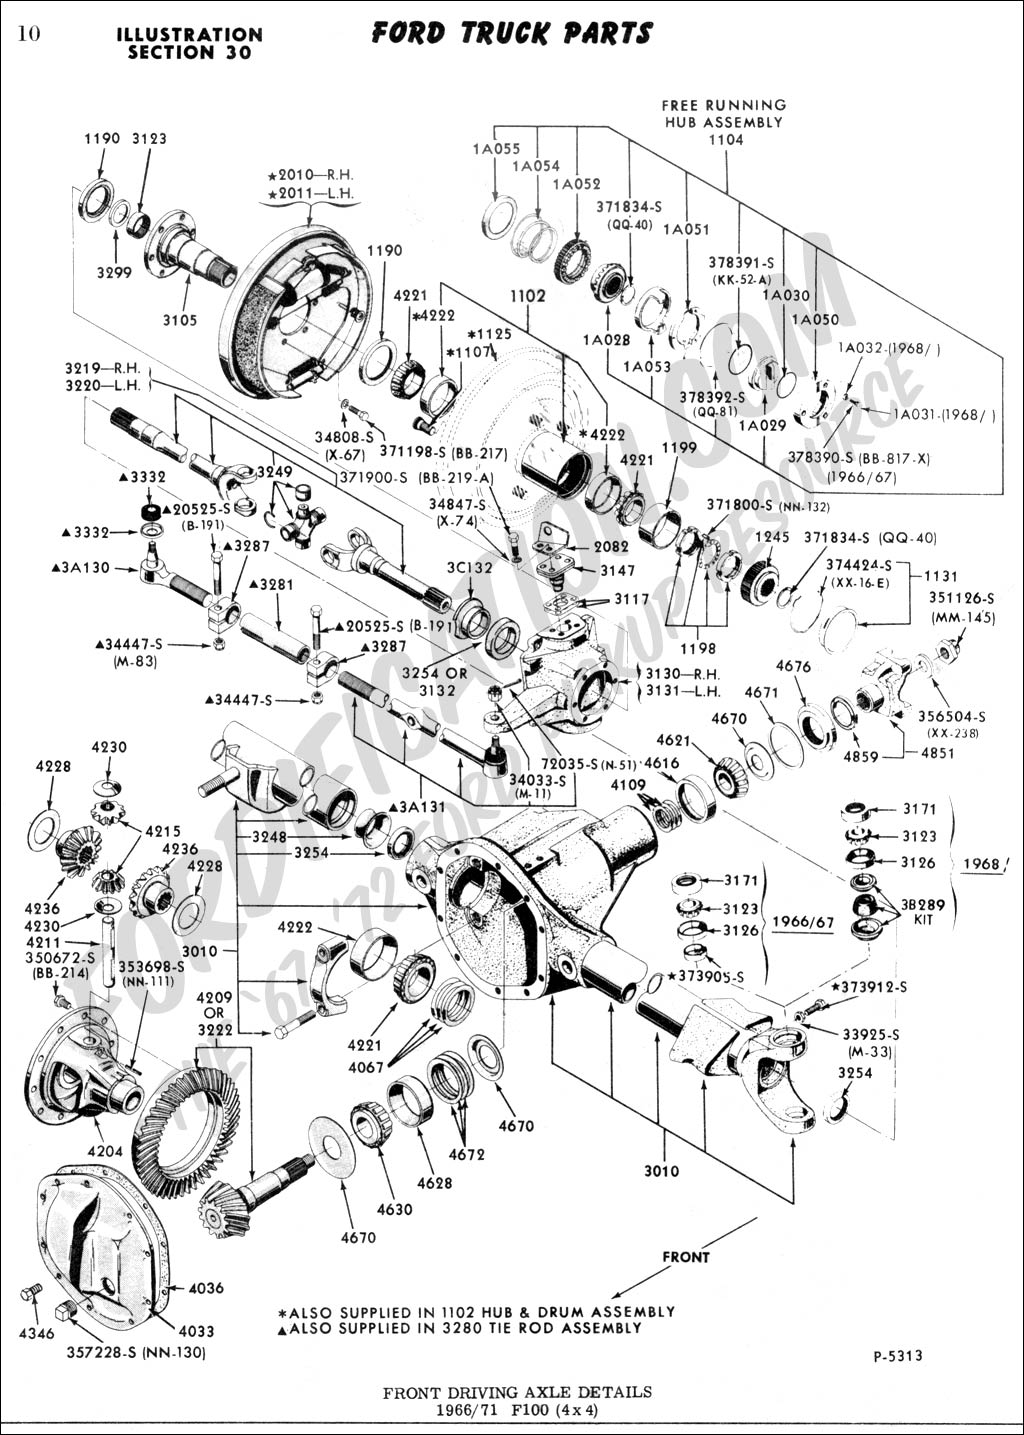 1966 F100 Steering Column Diagram 1966 F100 Power Steering